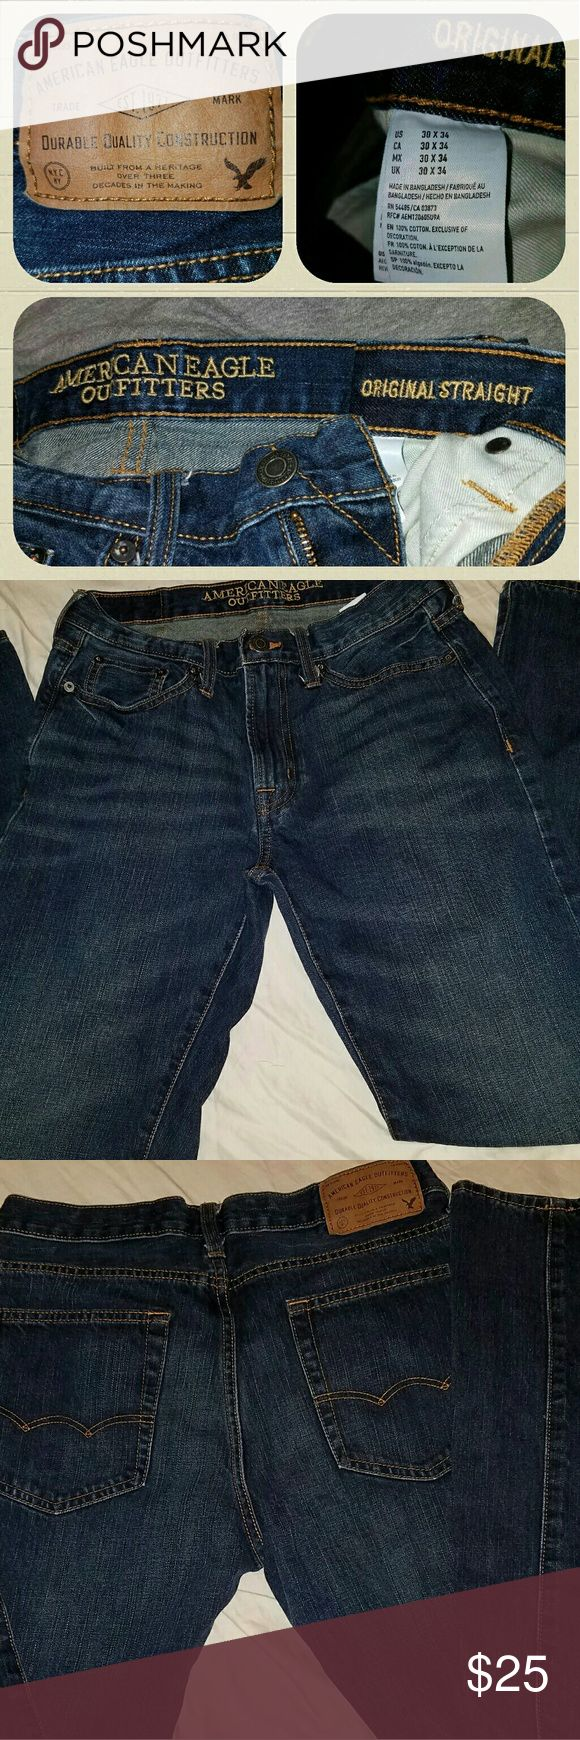 Mens 30?34 American Eagle Outfitters jeans Look and feel like new jeans in perfect condition they are 30x34 original straight blue jeans from American Eagle Outfitters great jeans American Eagle Outfitters Jeans Straight